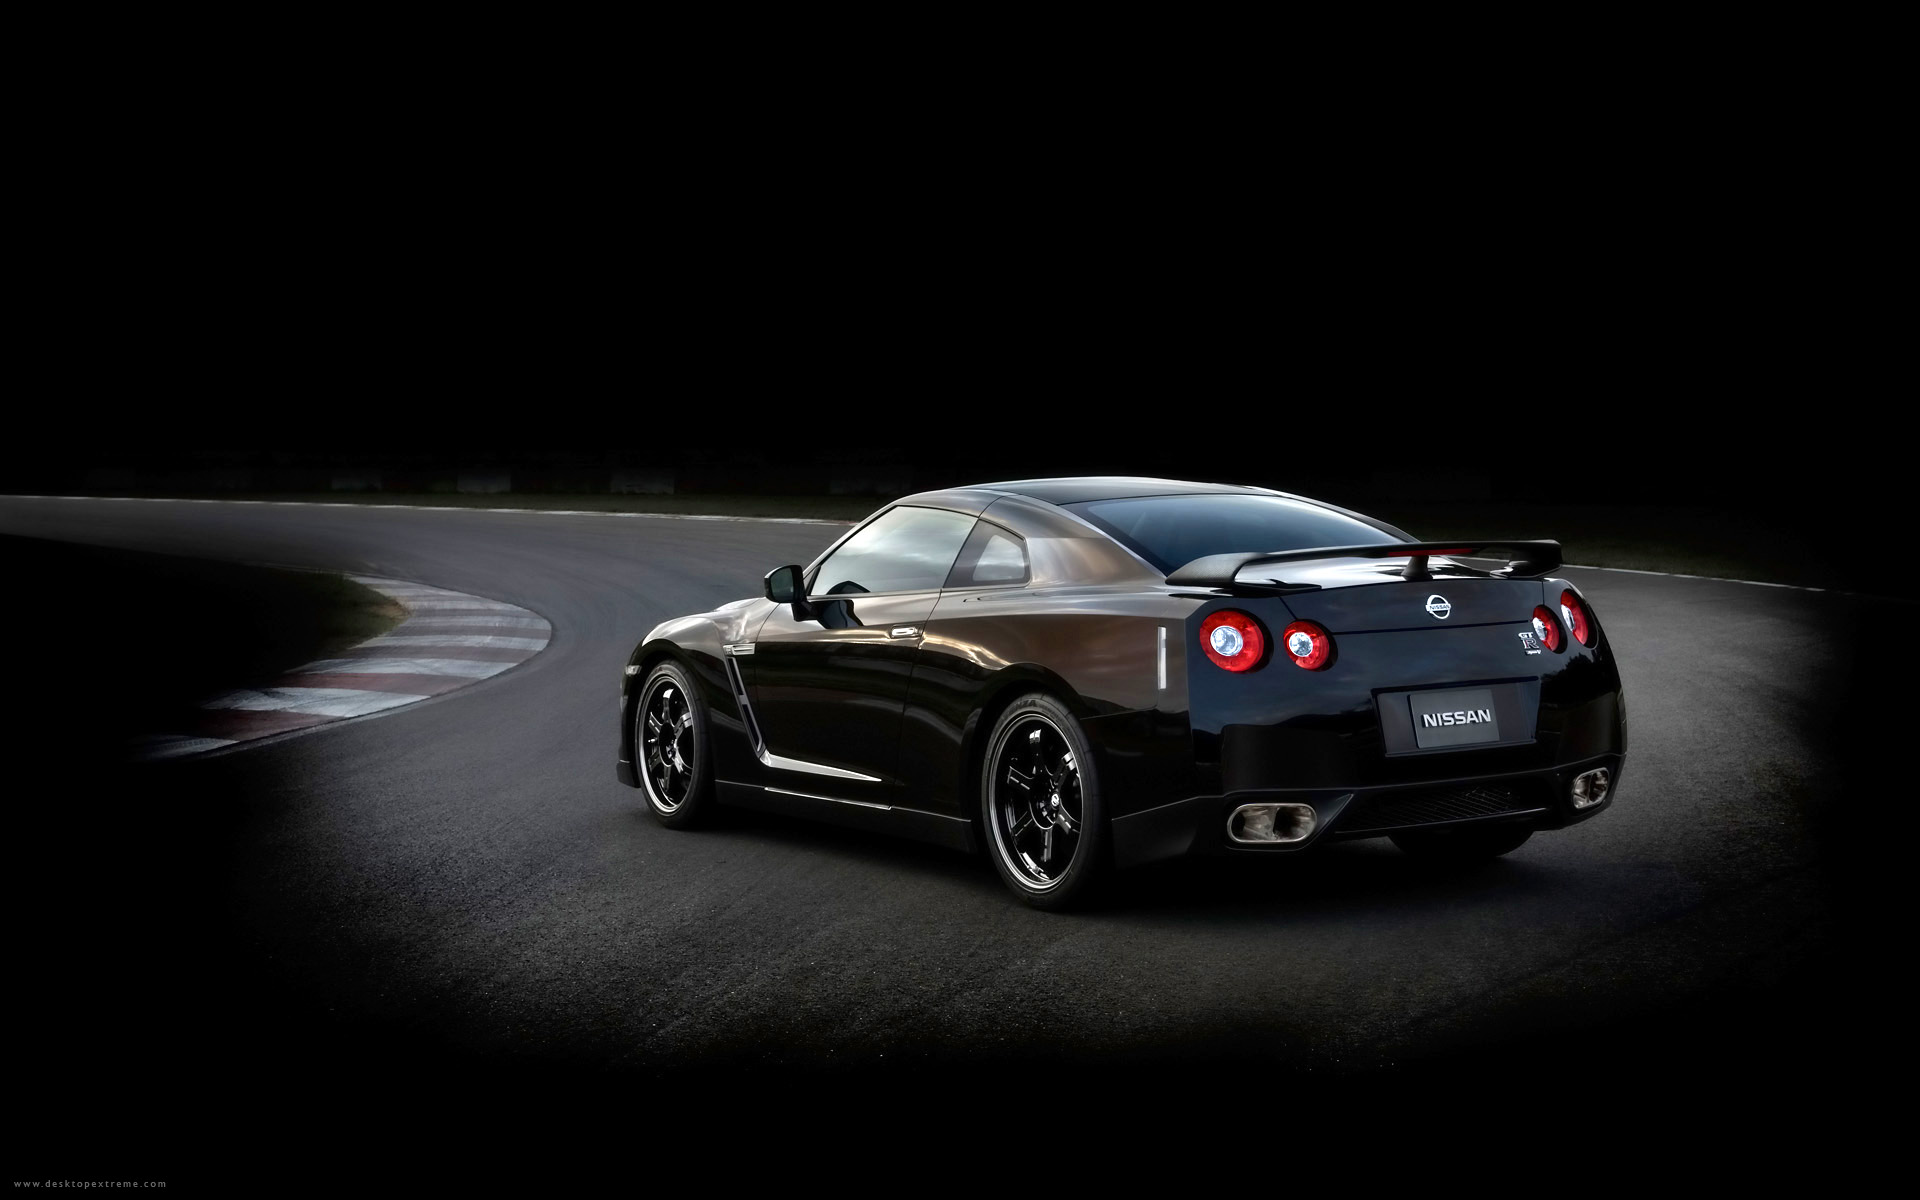 Nissan GT R Wallpapers High Resolution and Quality Download 1920x1200